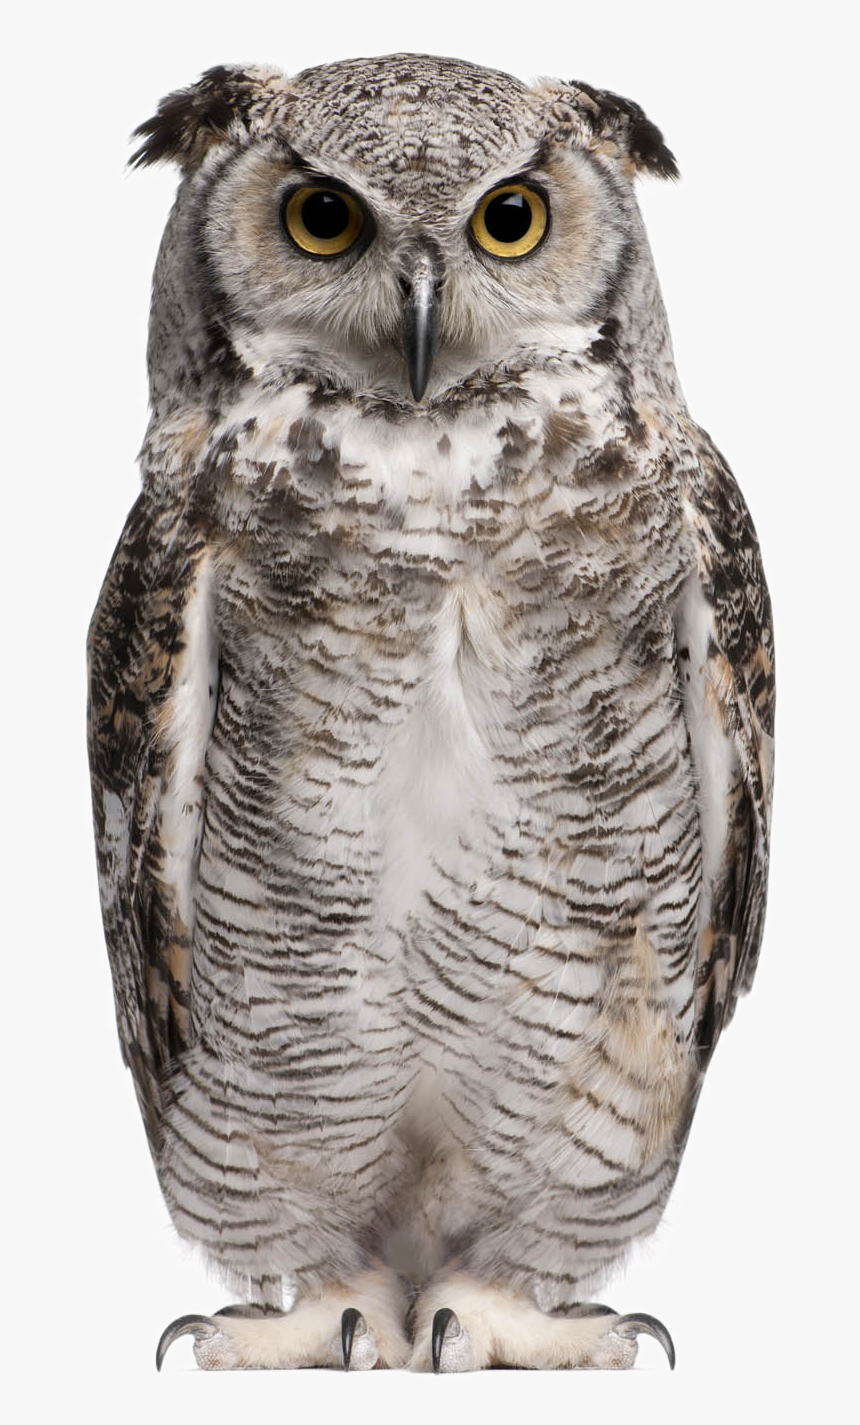 Owl Png Background Image - Great Horned Owl White Background, Transparent Png, Free Download